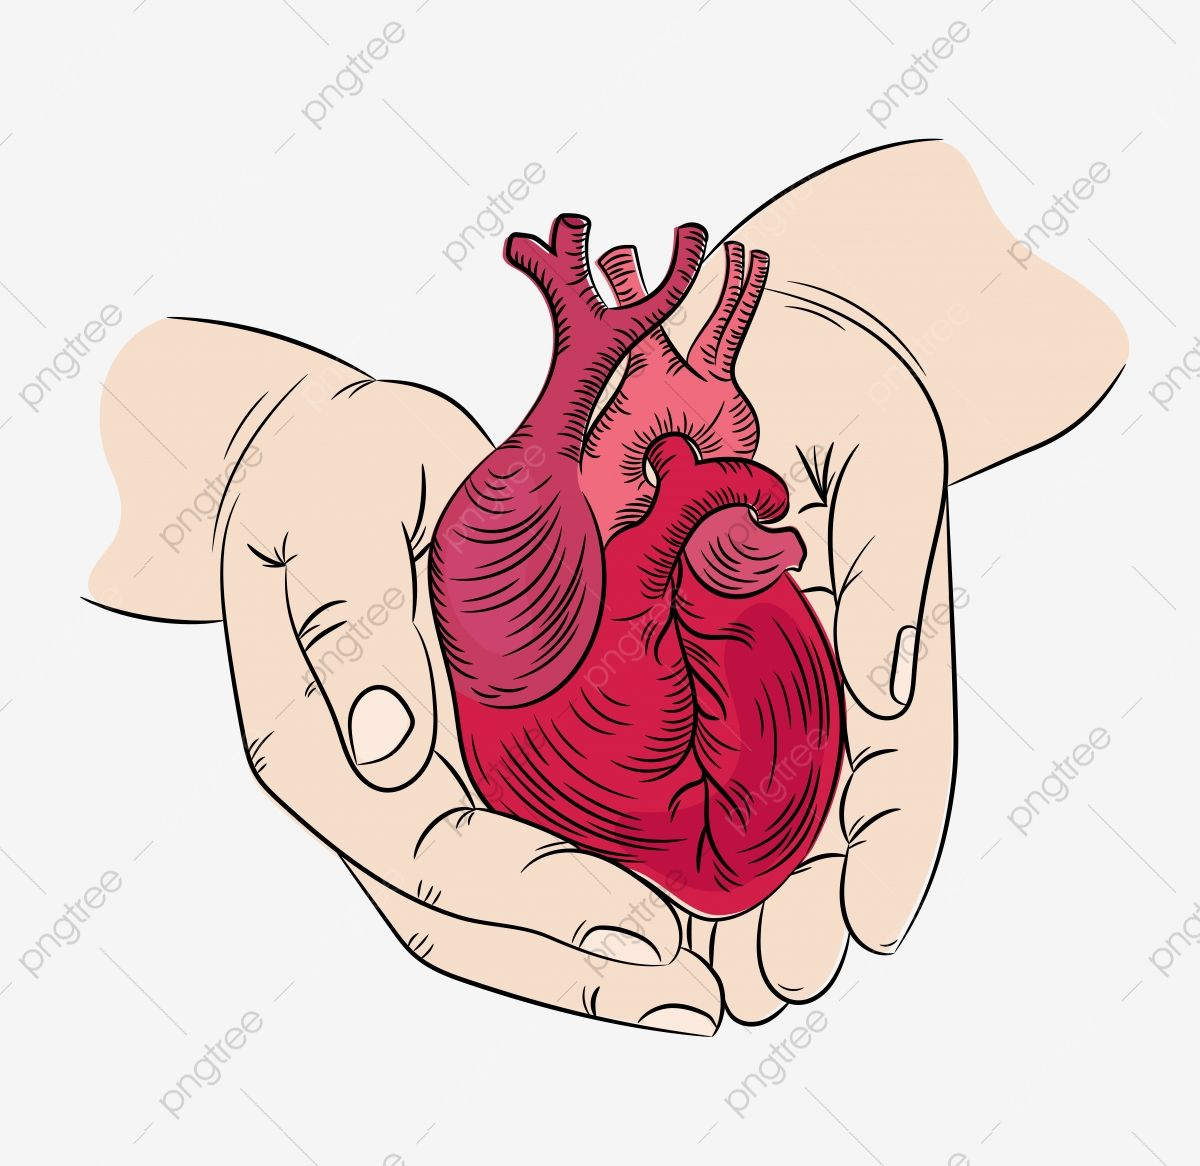 Heart And Hands Health Symbol Medicine Human Hand Draw Vector Illustration Print Set Anatomic Heart Hand Png And Vector With Transparent Background For Free In 2021 Hand Drawn Vector Illustrations